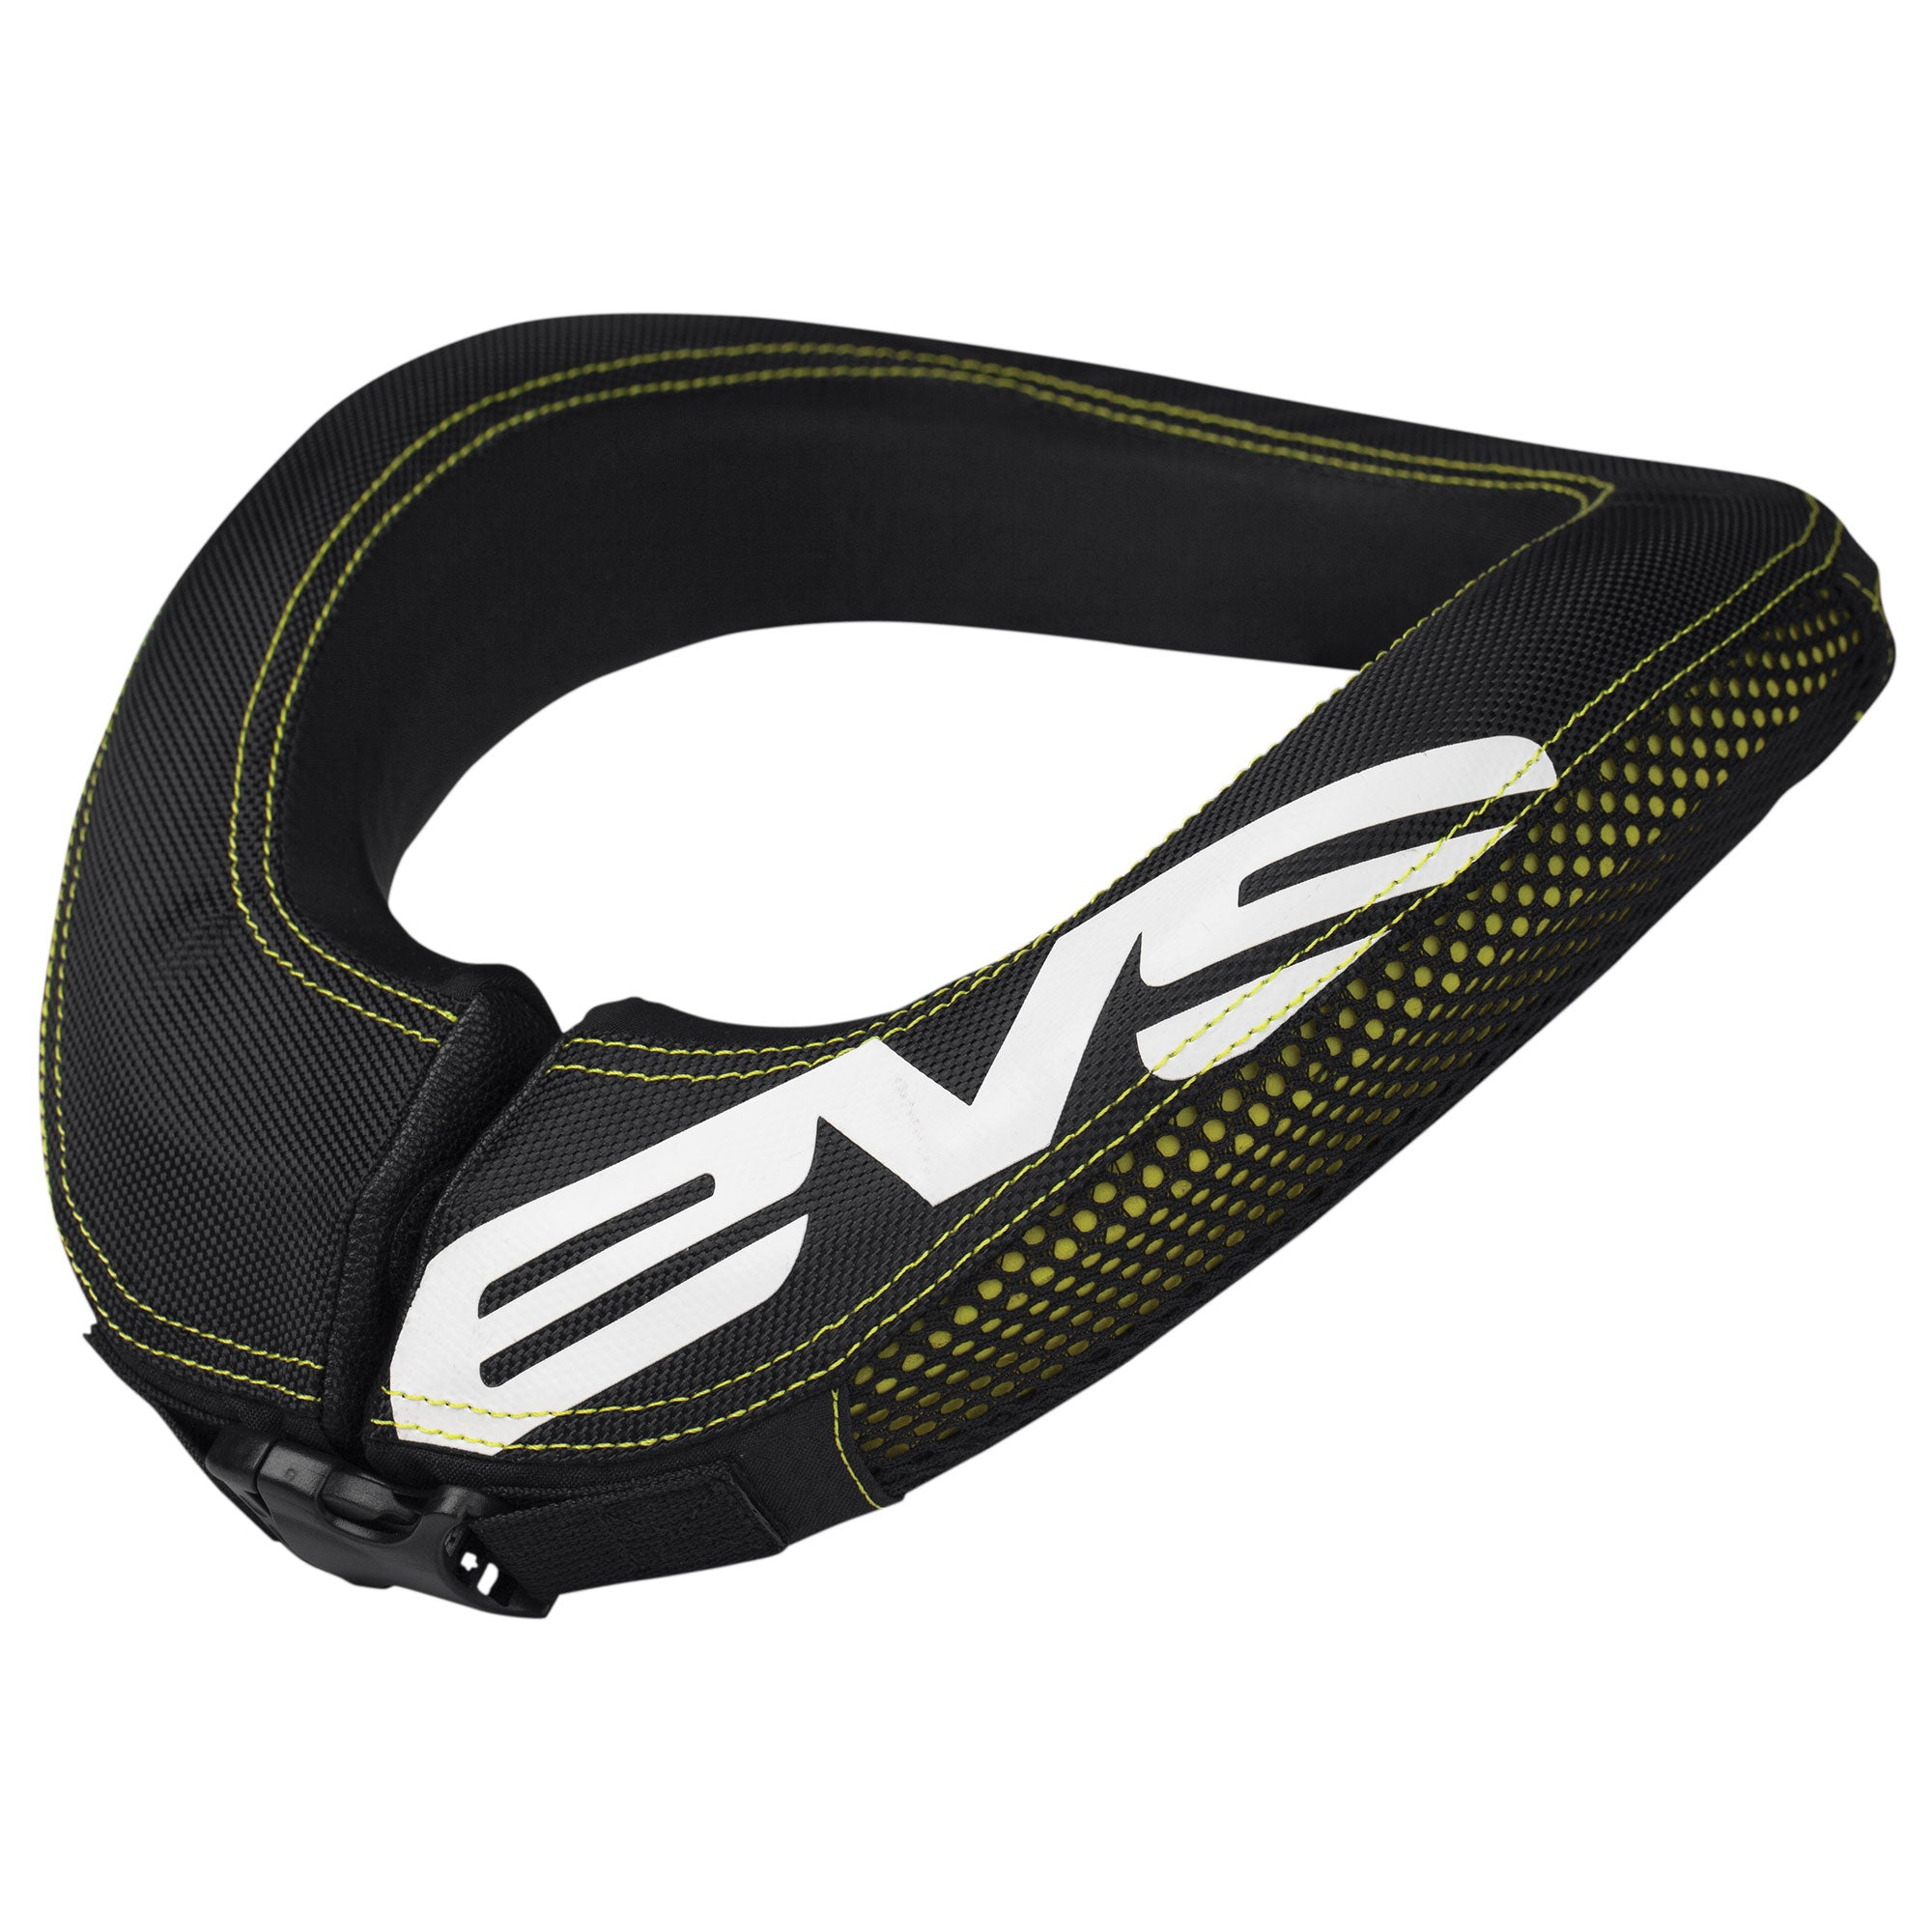 Flat Racing Neck Brace Adult Black